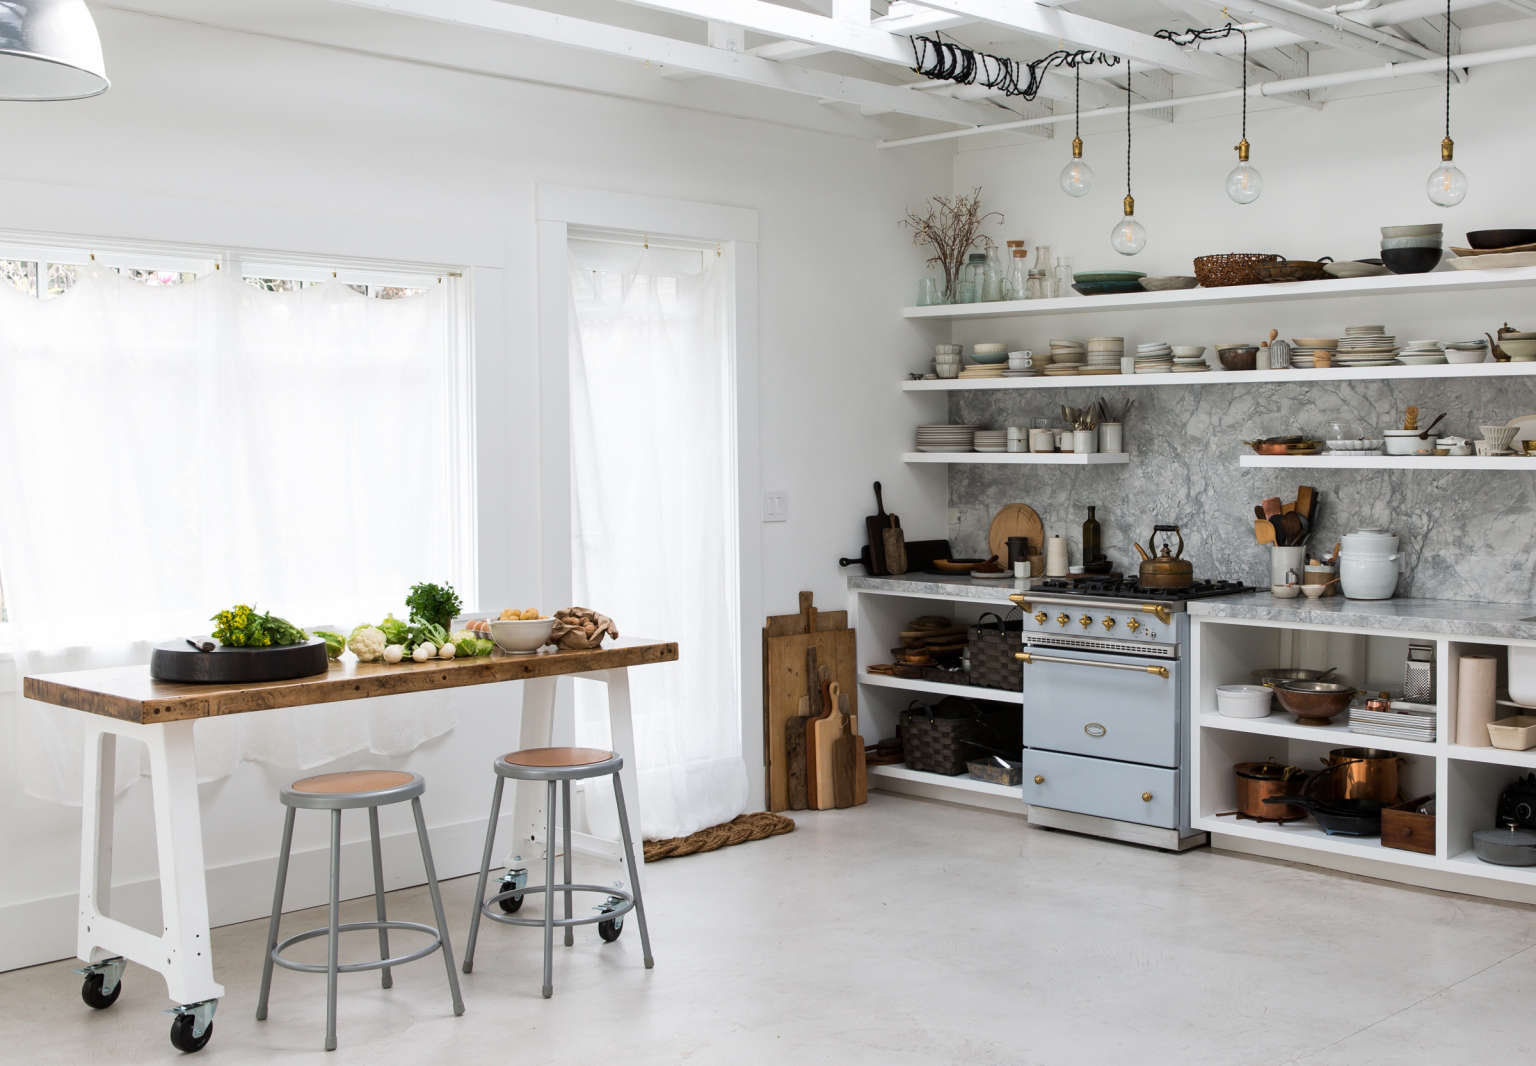 eb5d6d349dd3 9 Unexpected Storage Hacks from a Food Photographer's Kitchen - The ...